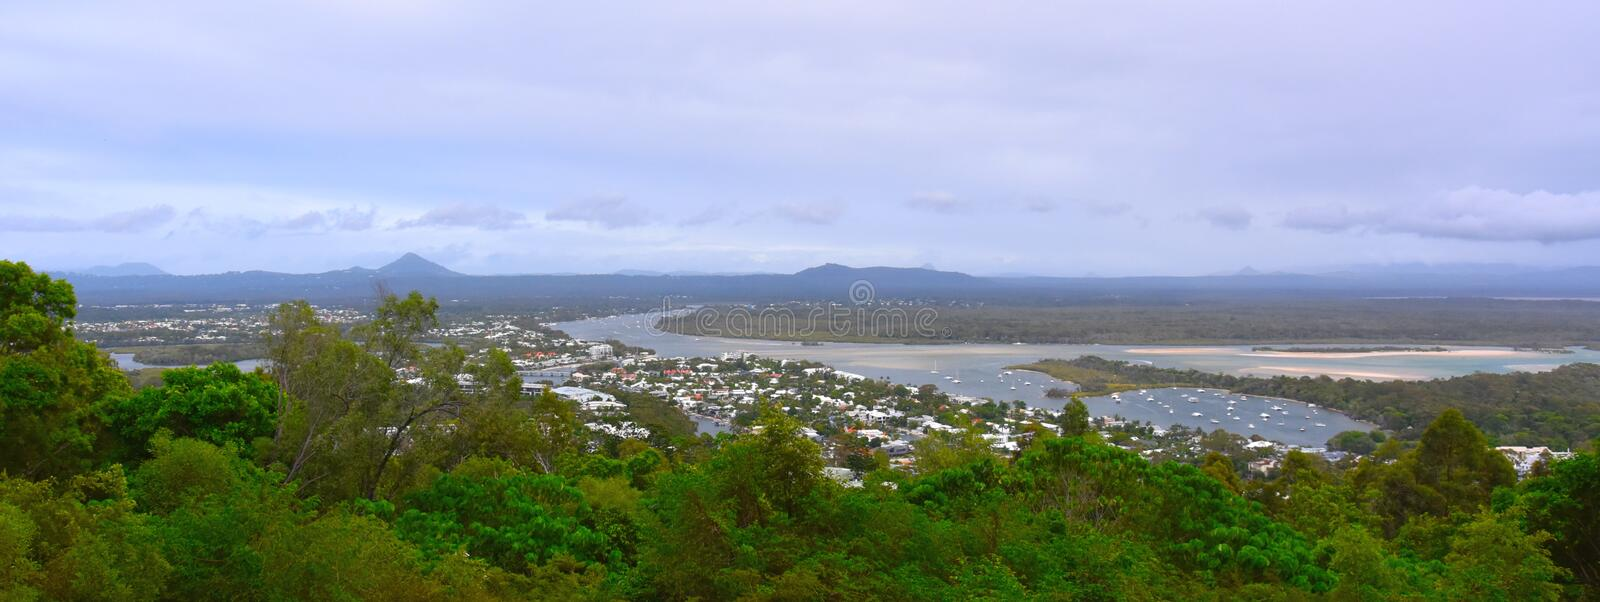 Laguna Lookout offers scenic views over Noosa. In the Sunshine Coast region of Queensland, Australia stock photo